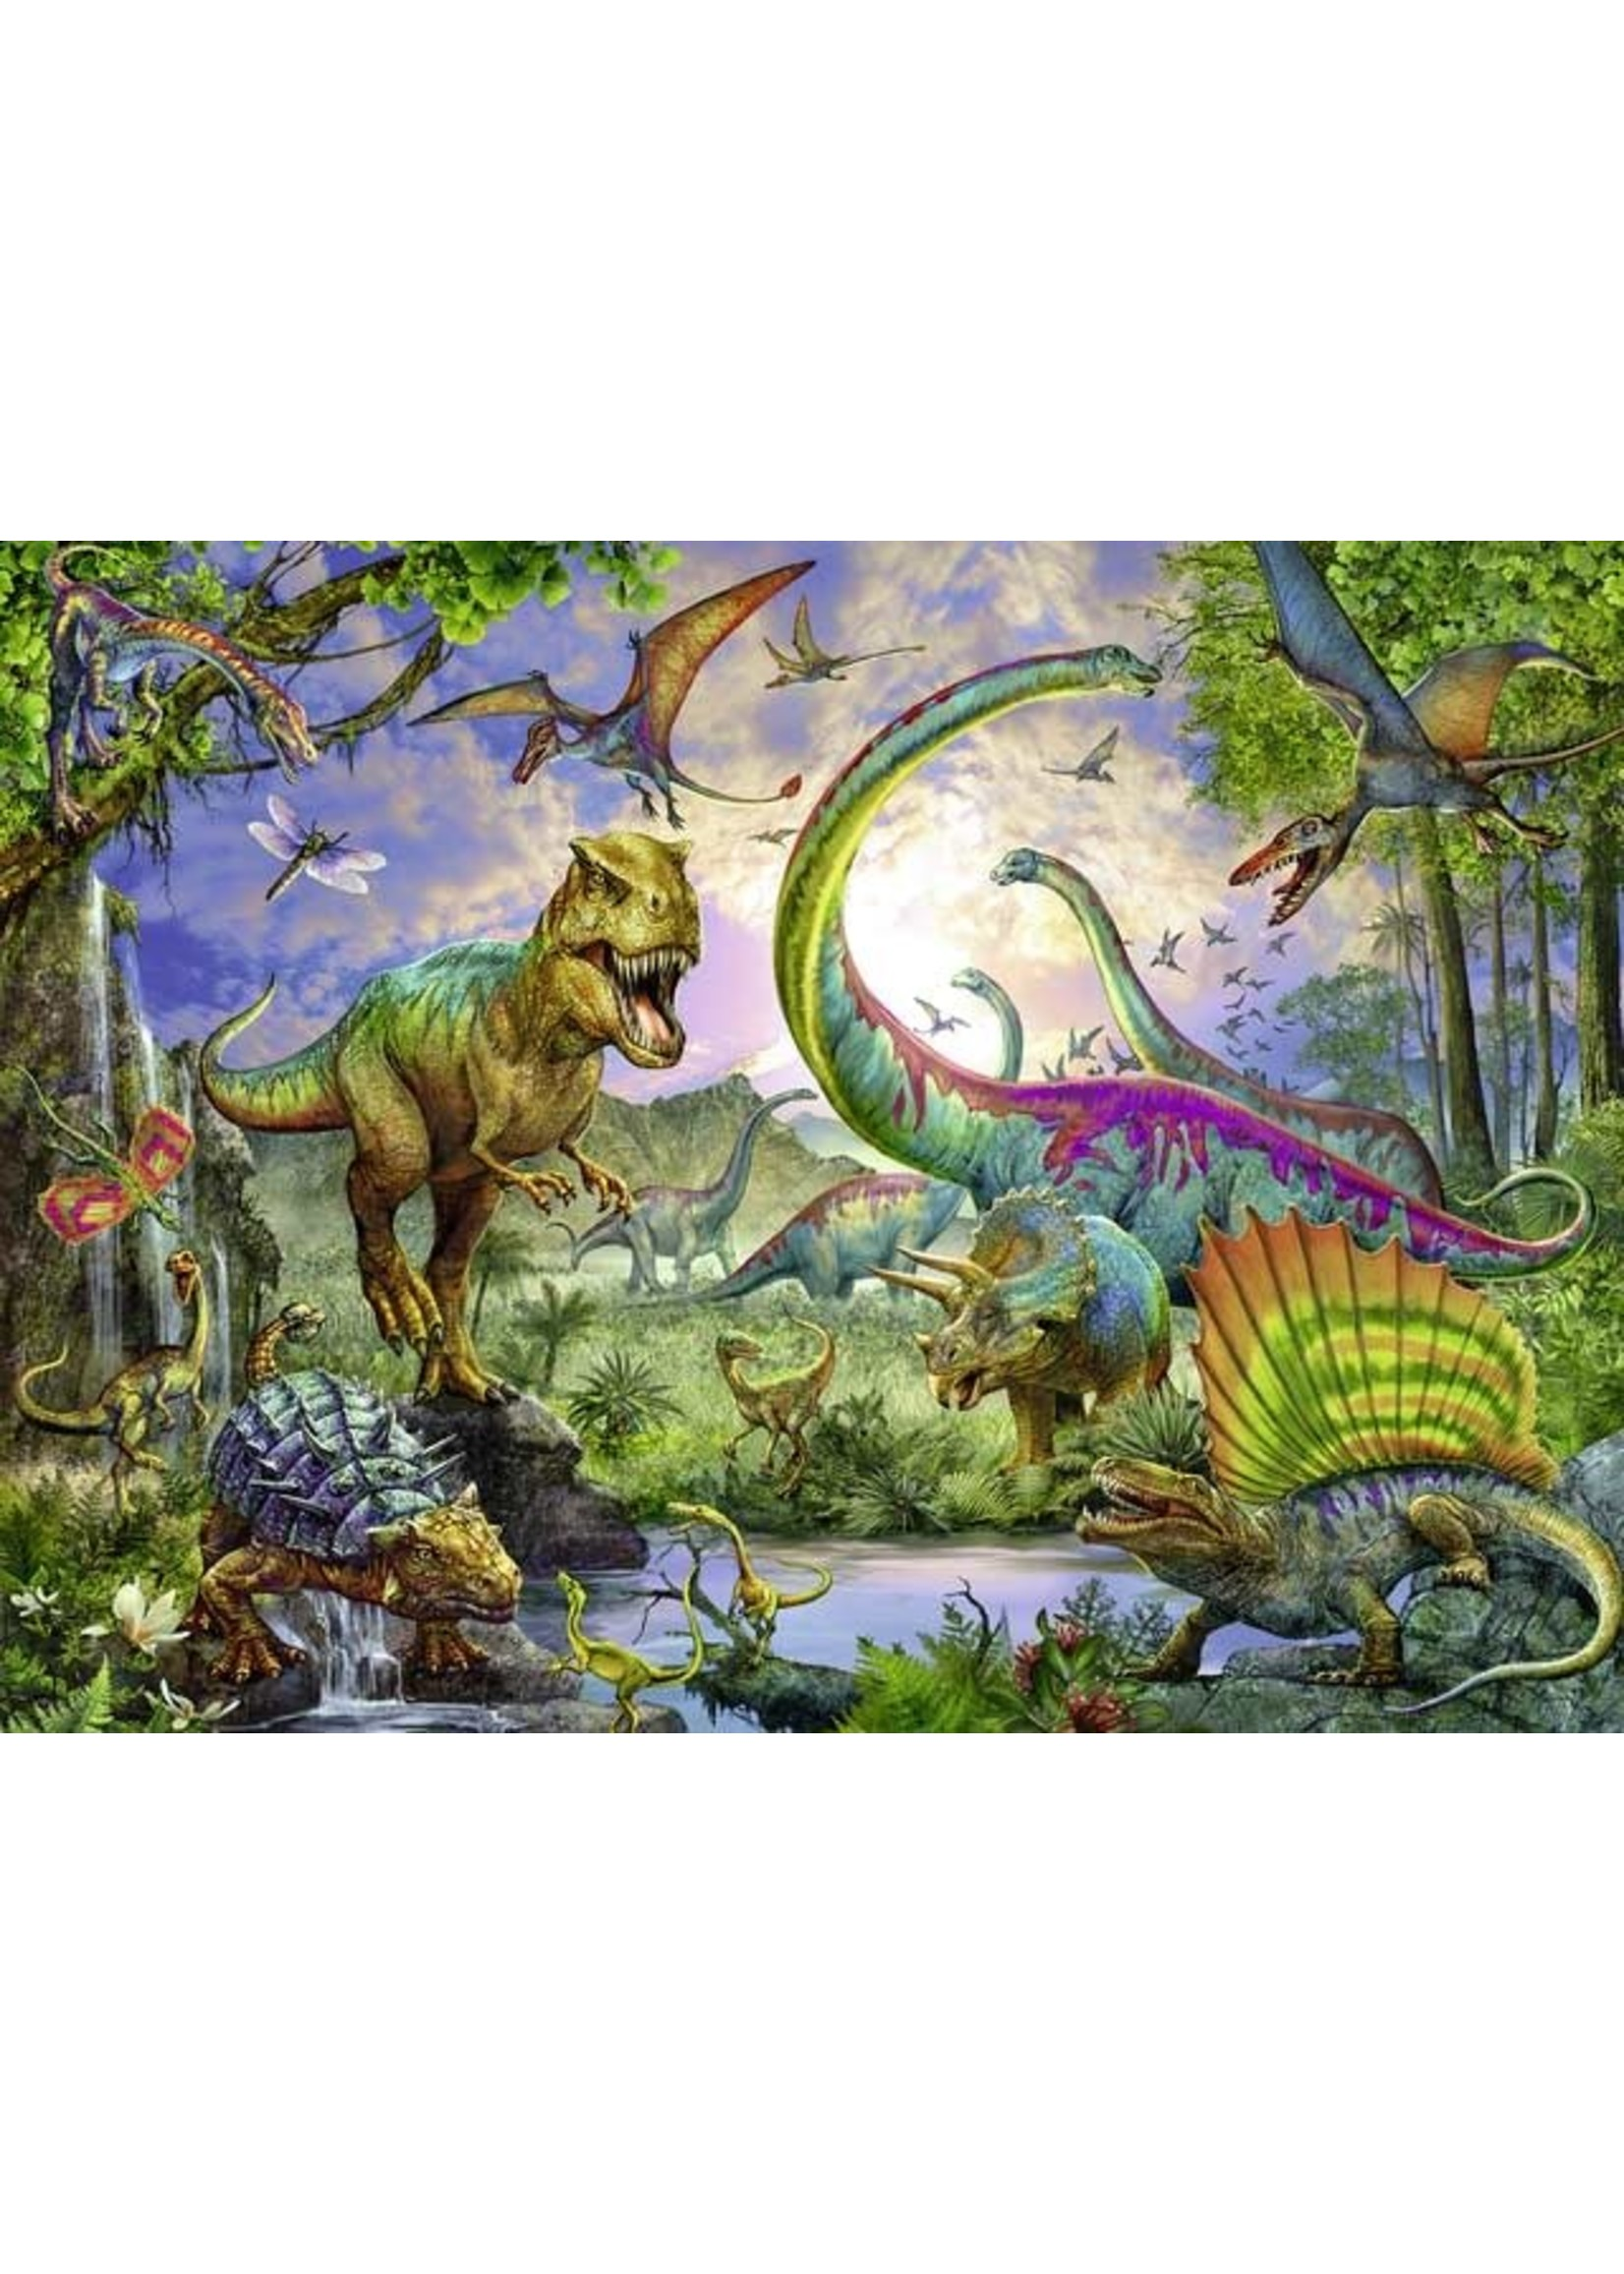 Ravensburger 200pc XXL Puzzle Realm of the Giants